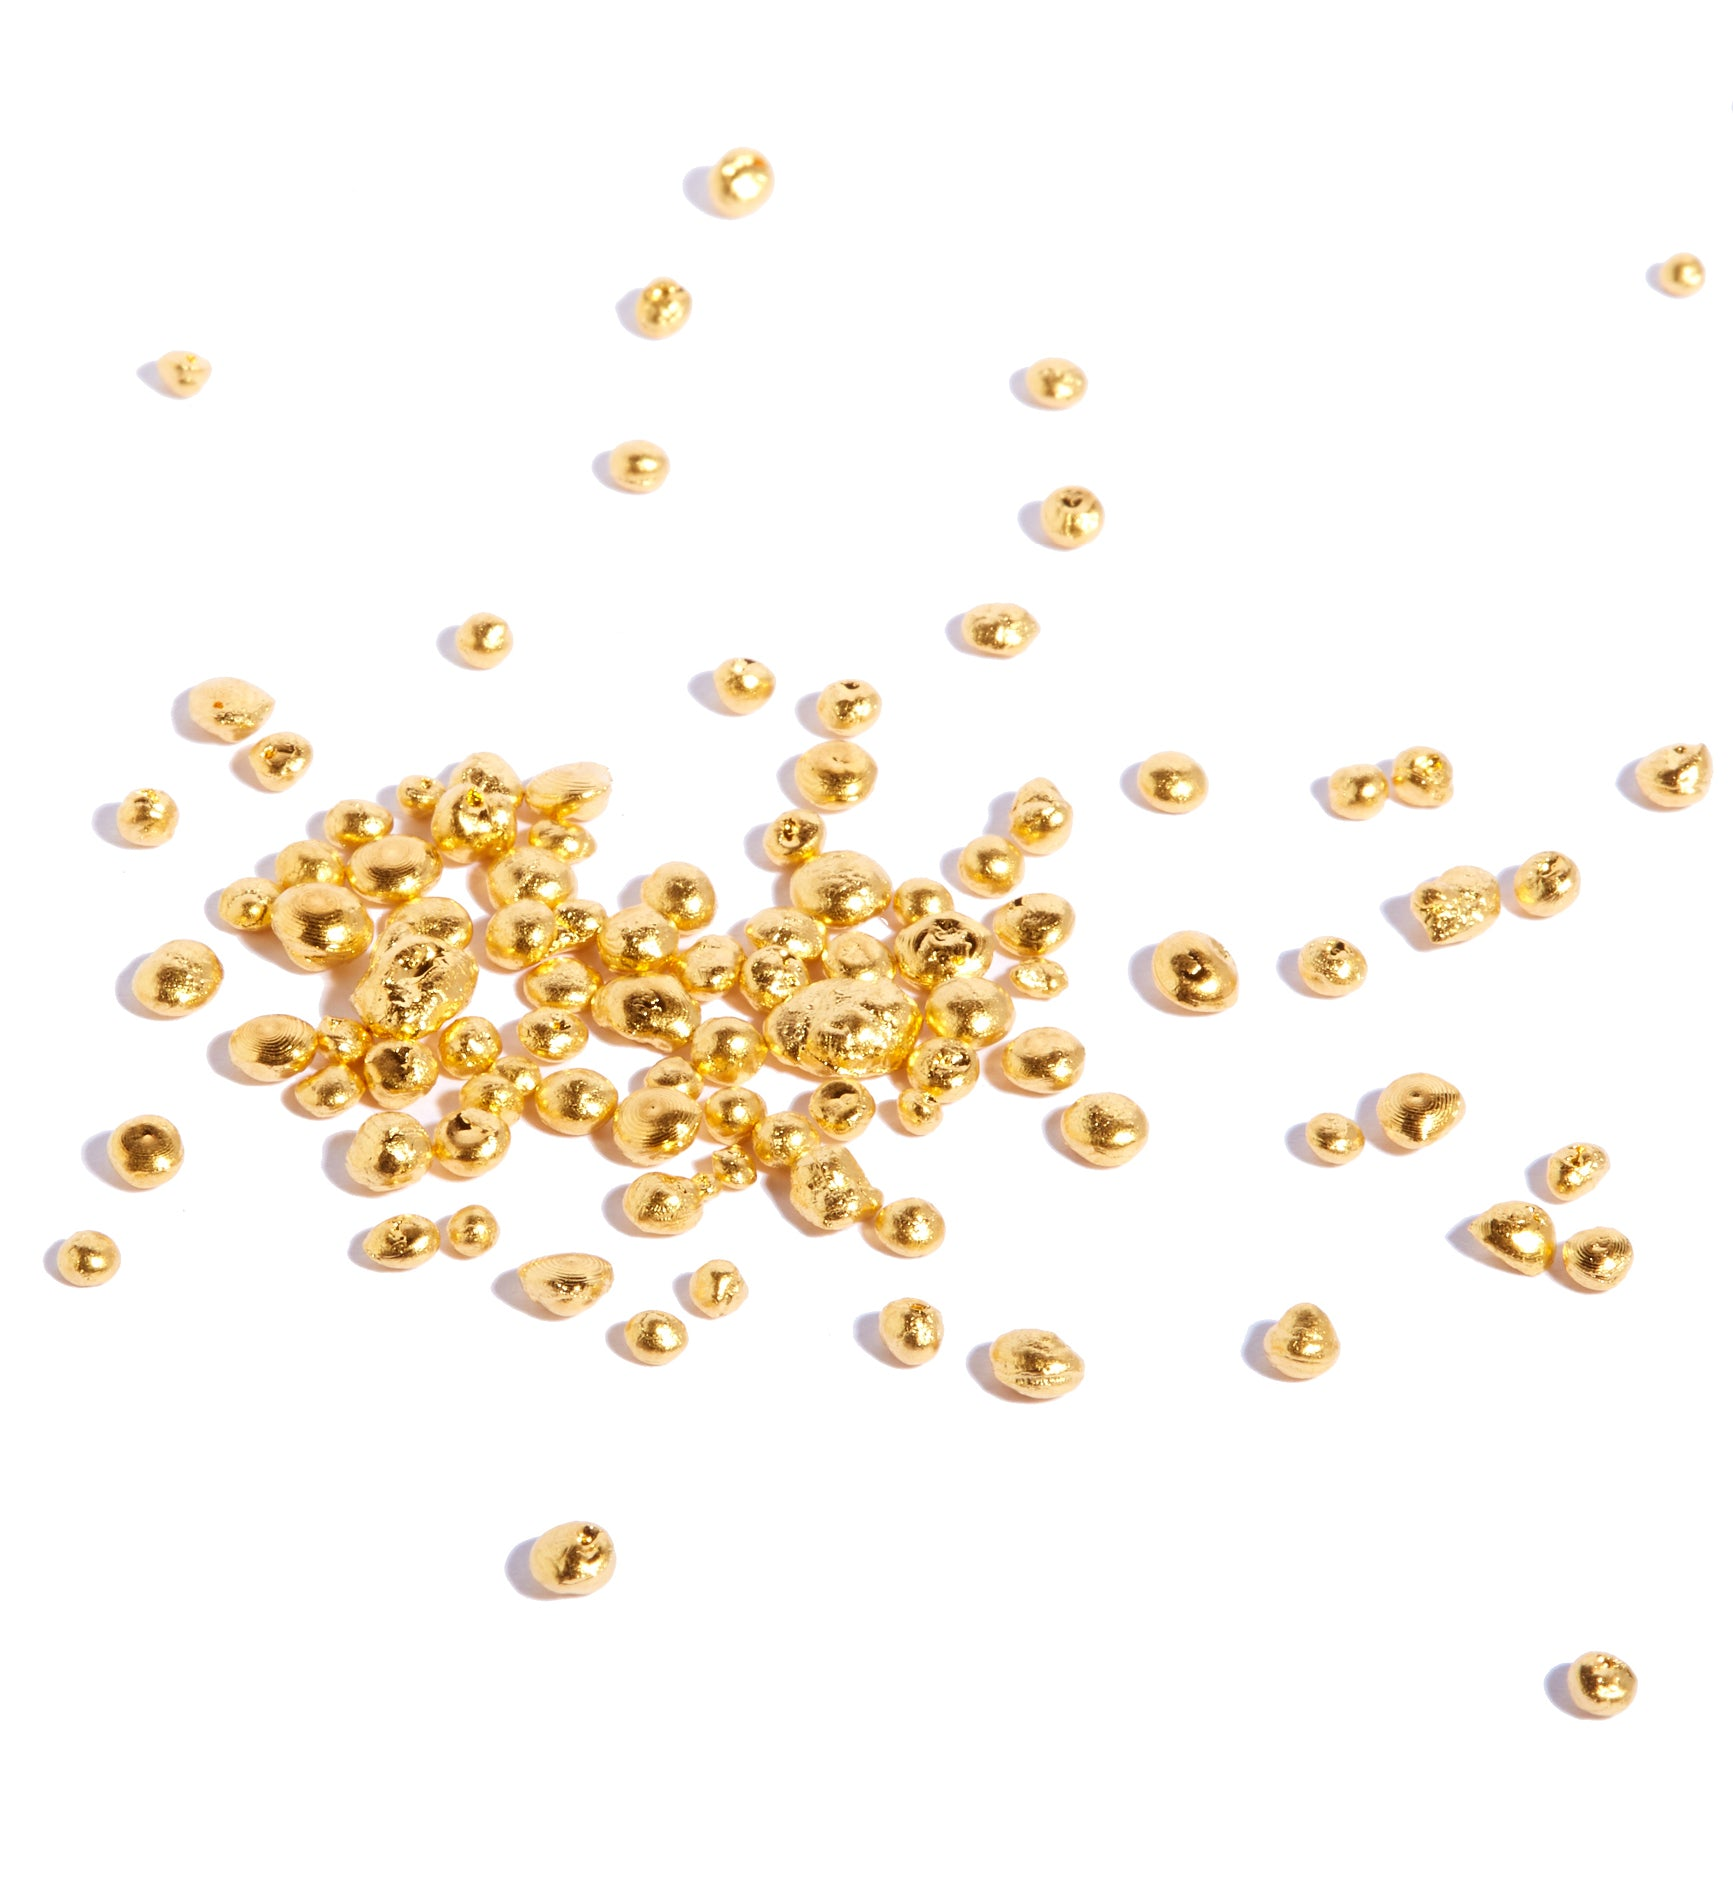 https://cdn.shopify.com/s/files/1/0571/9261/t/15/assets/gold%20granules-1509672918829.jpg?4395532746077872046